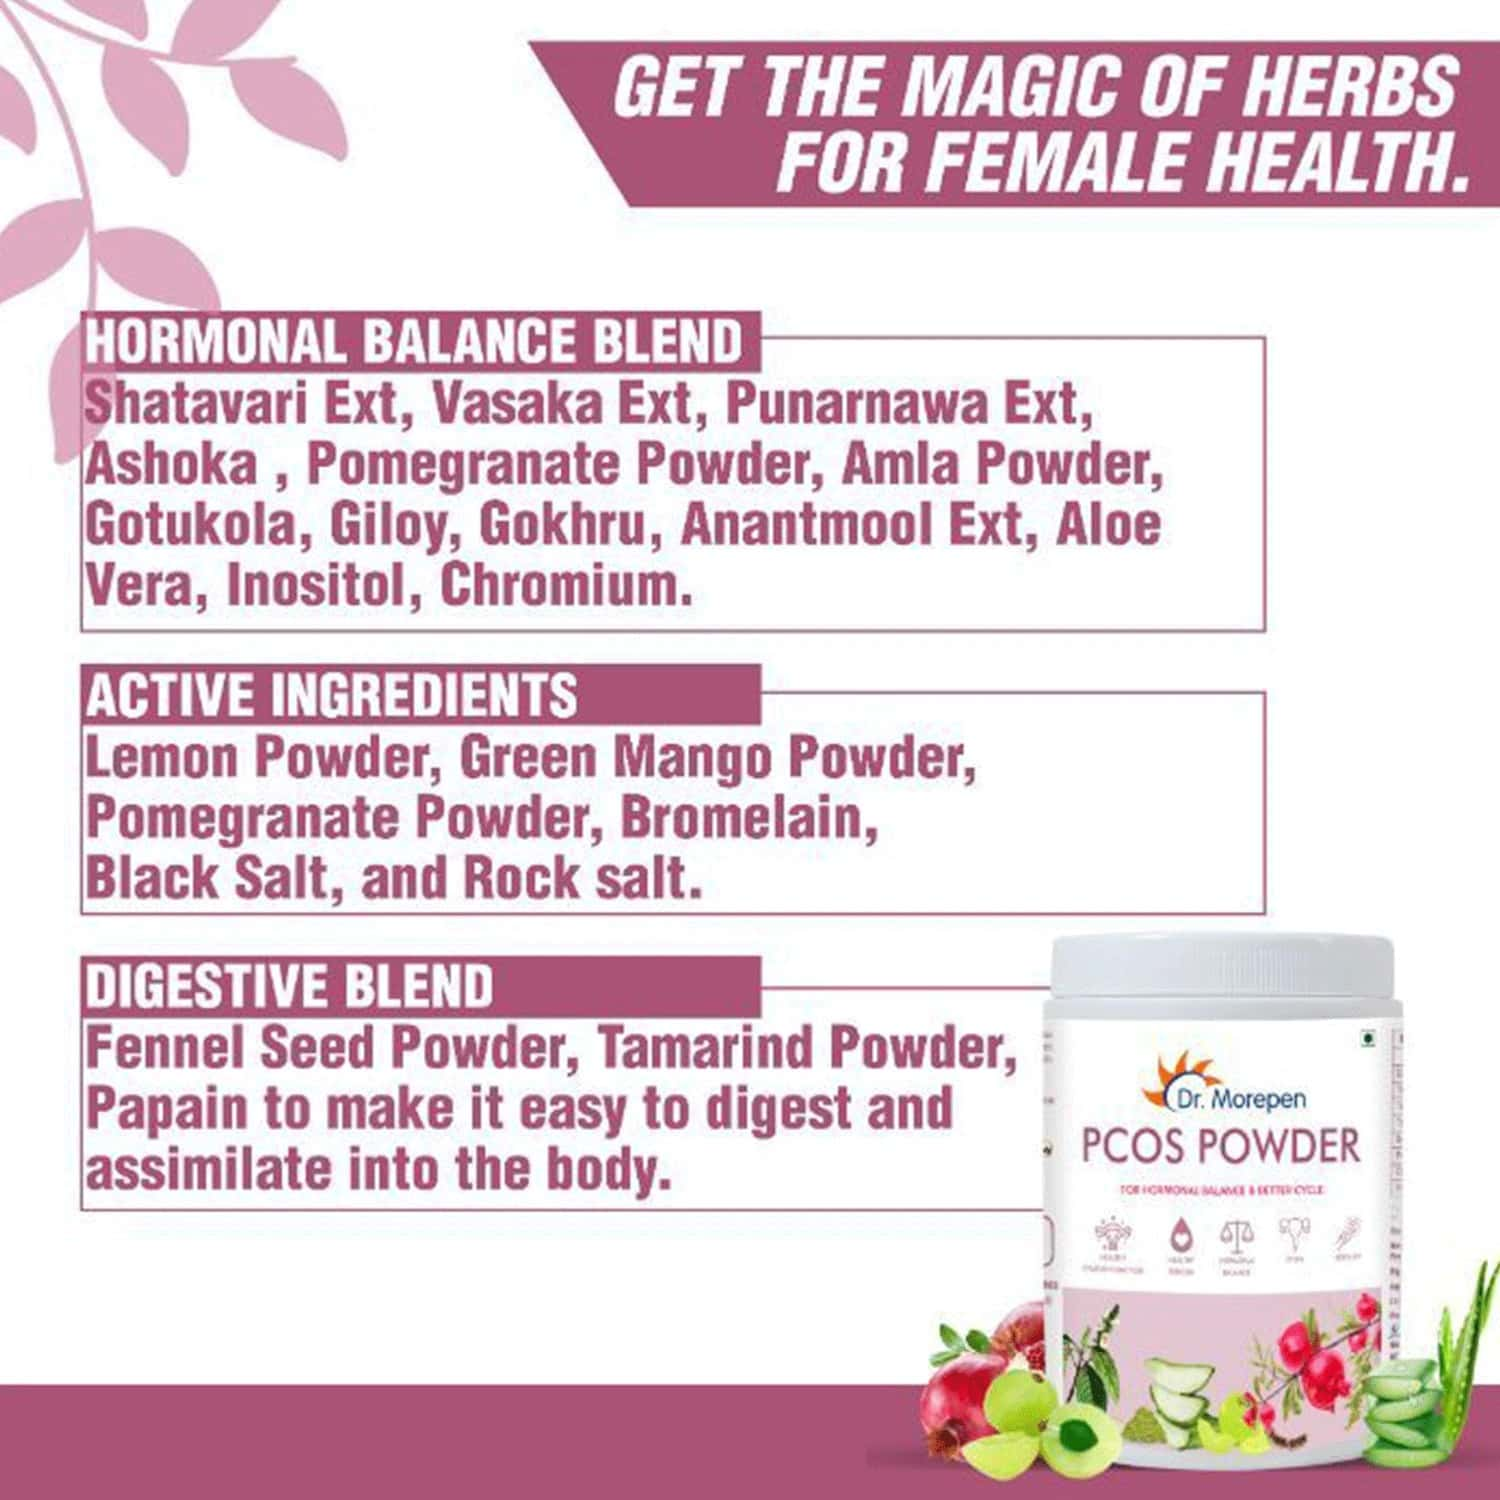 Dr Morepen Pcos Powder For Hormonal Balance & Better Cycle Supplement For Women - 250g